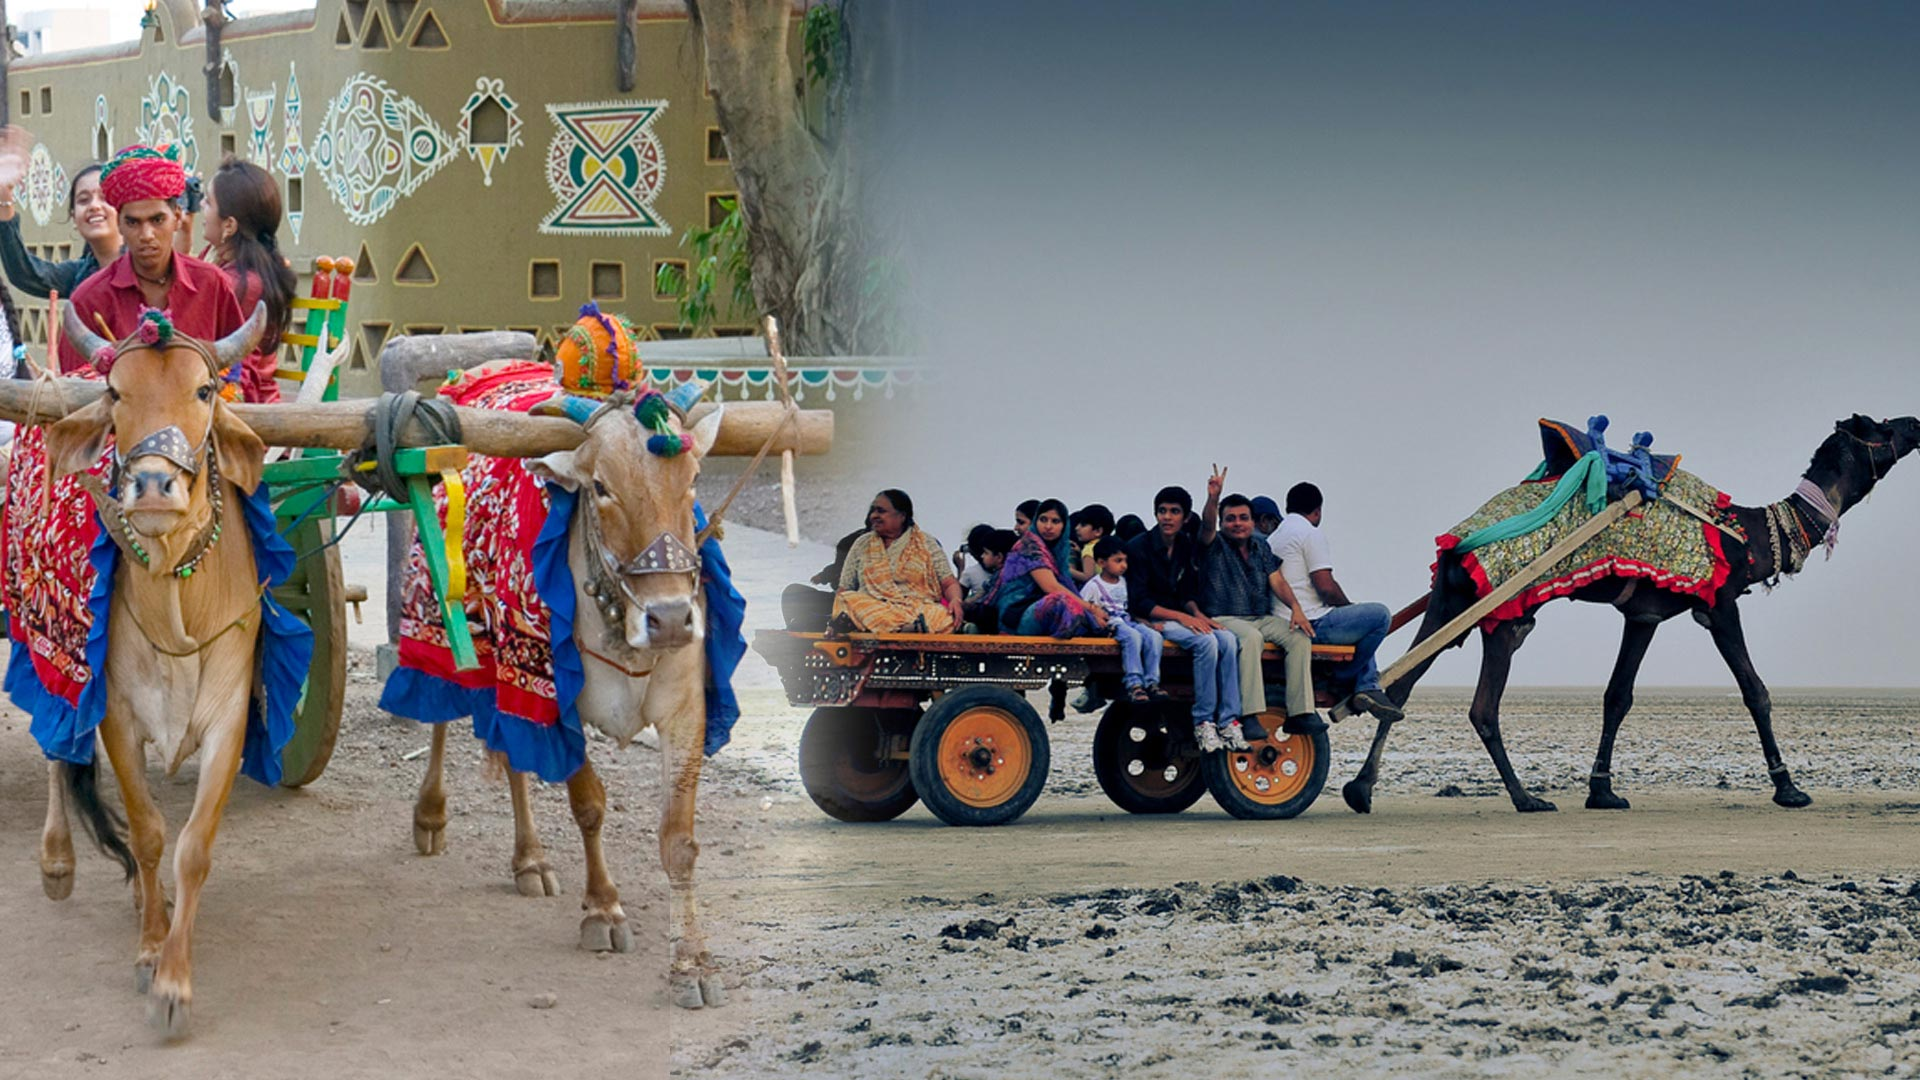 mode of transportation in rajasthan